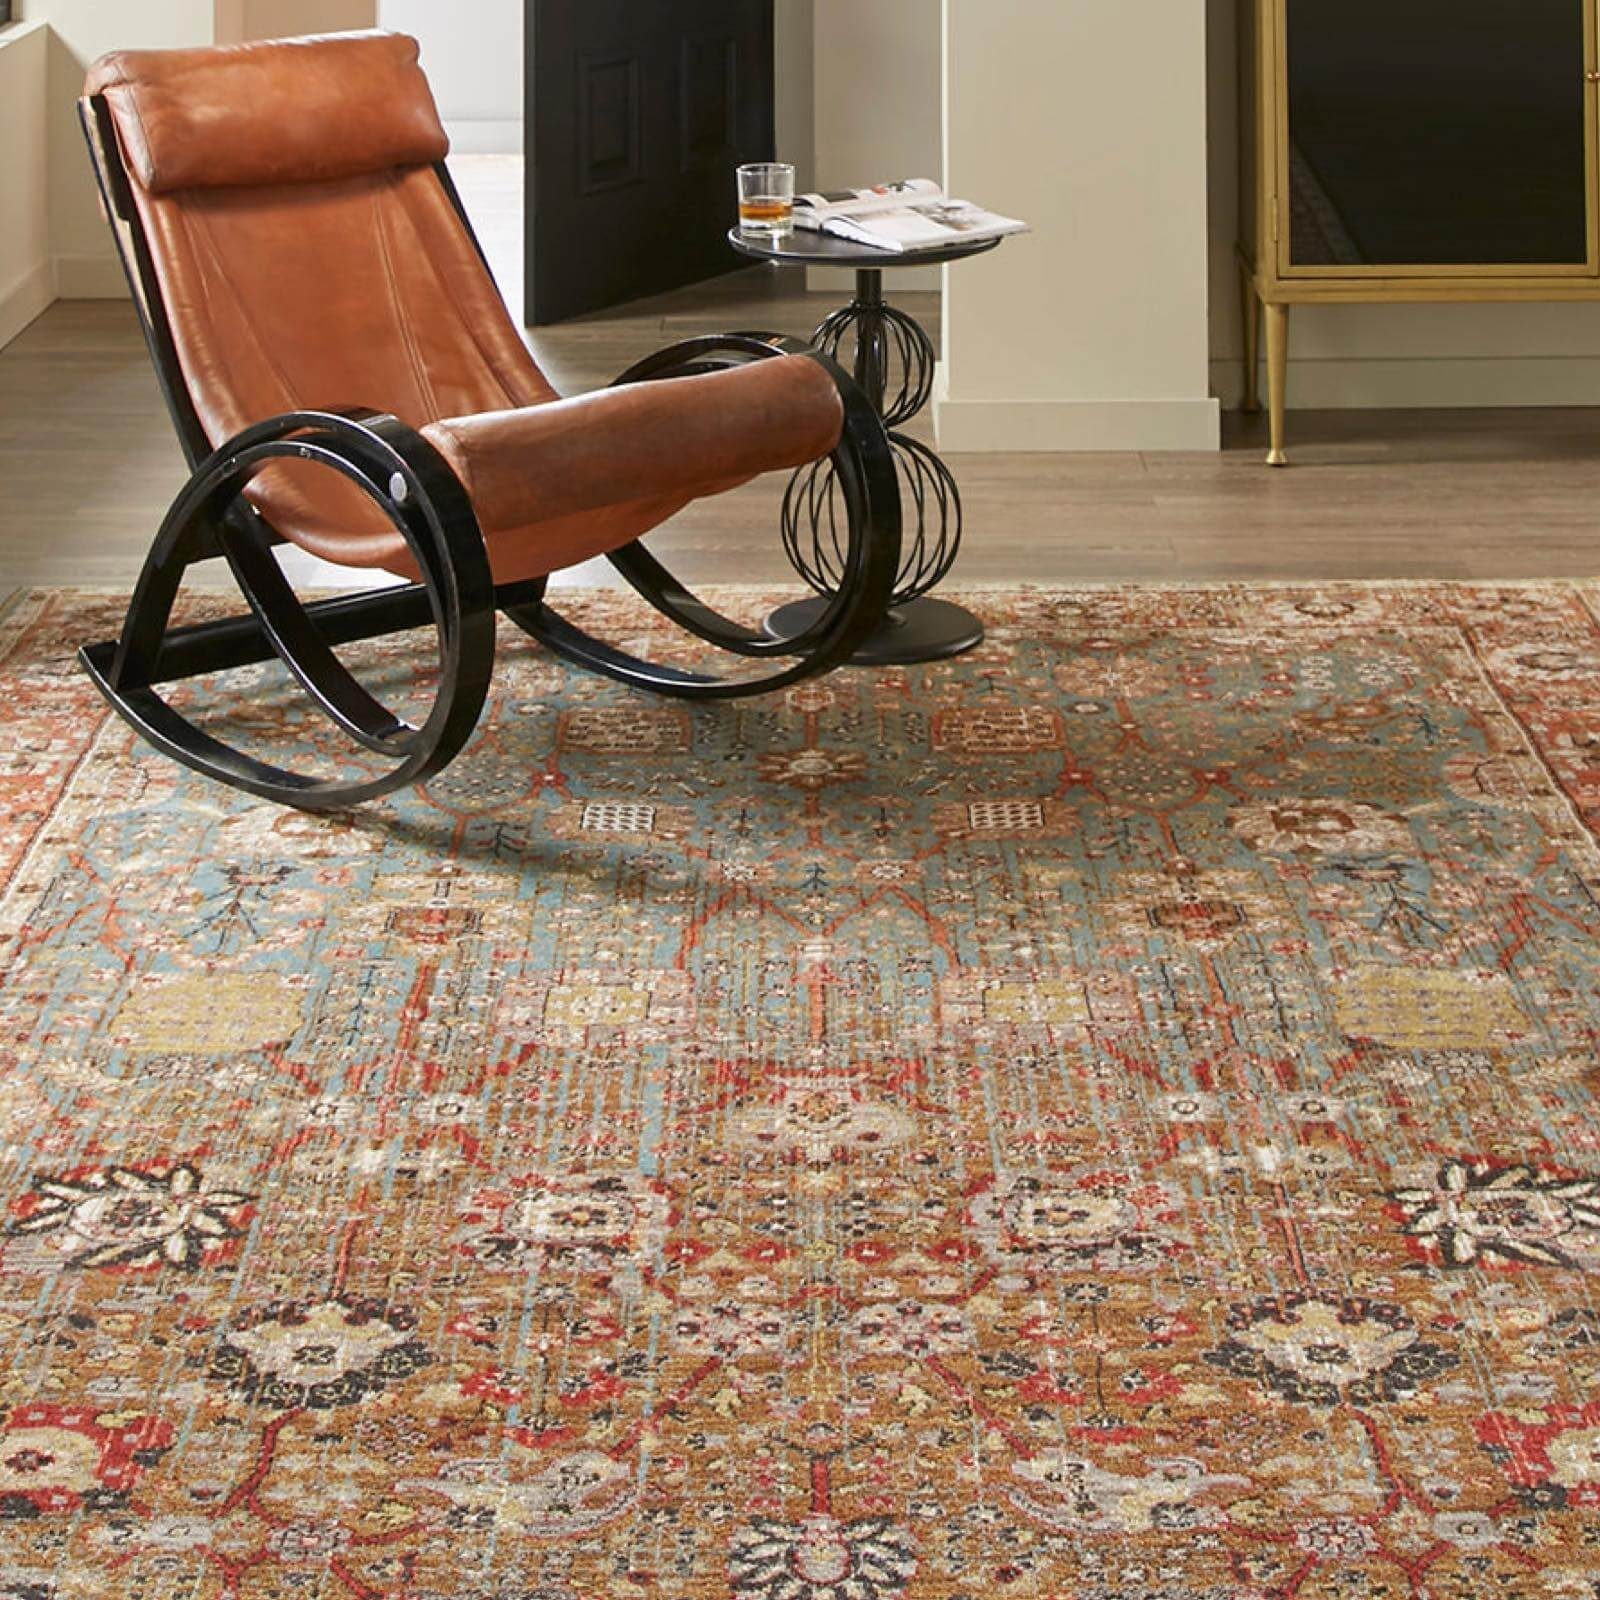 Armchair on rug | Markville Carpet & Flooring